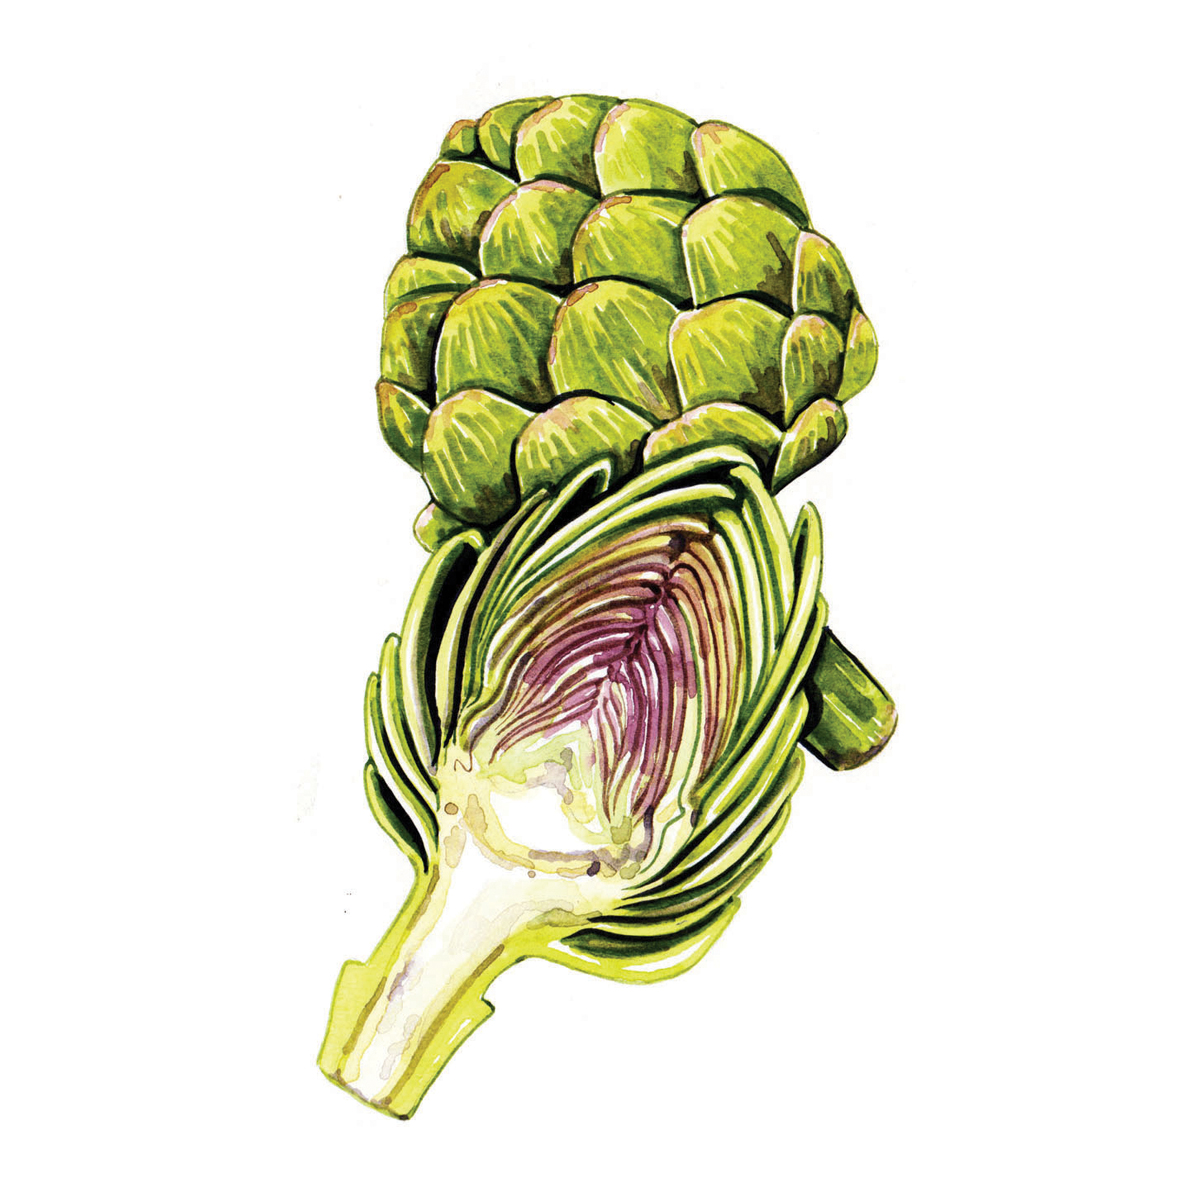 watercolour food illustrations artichoke